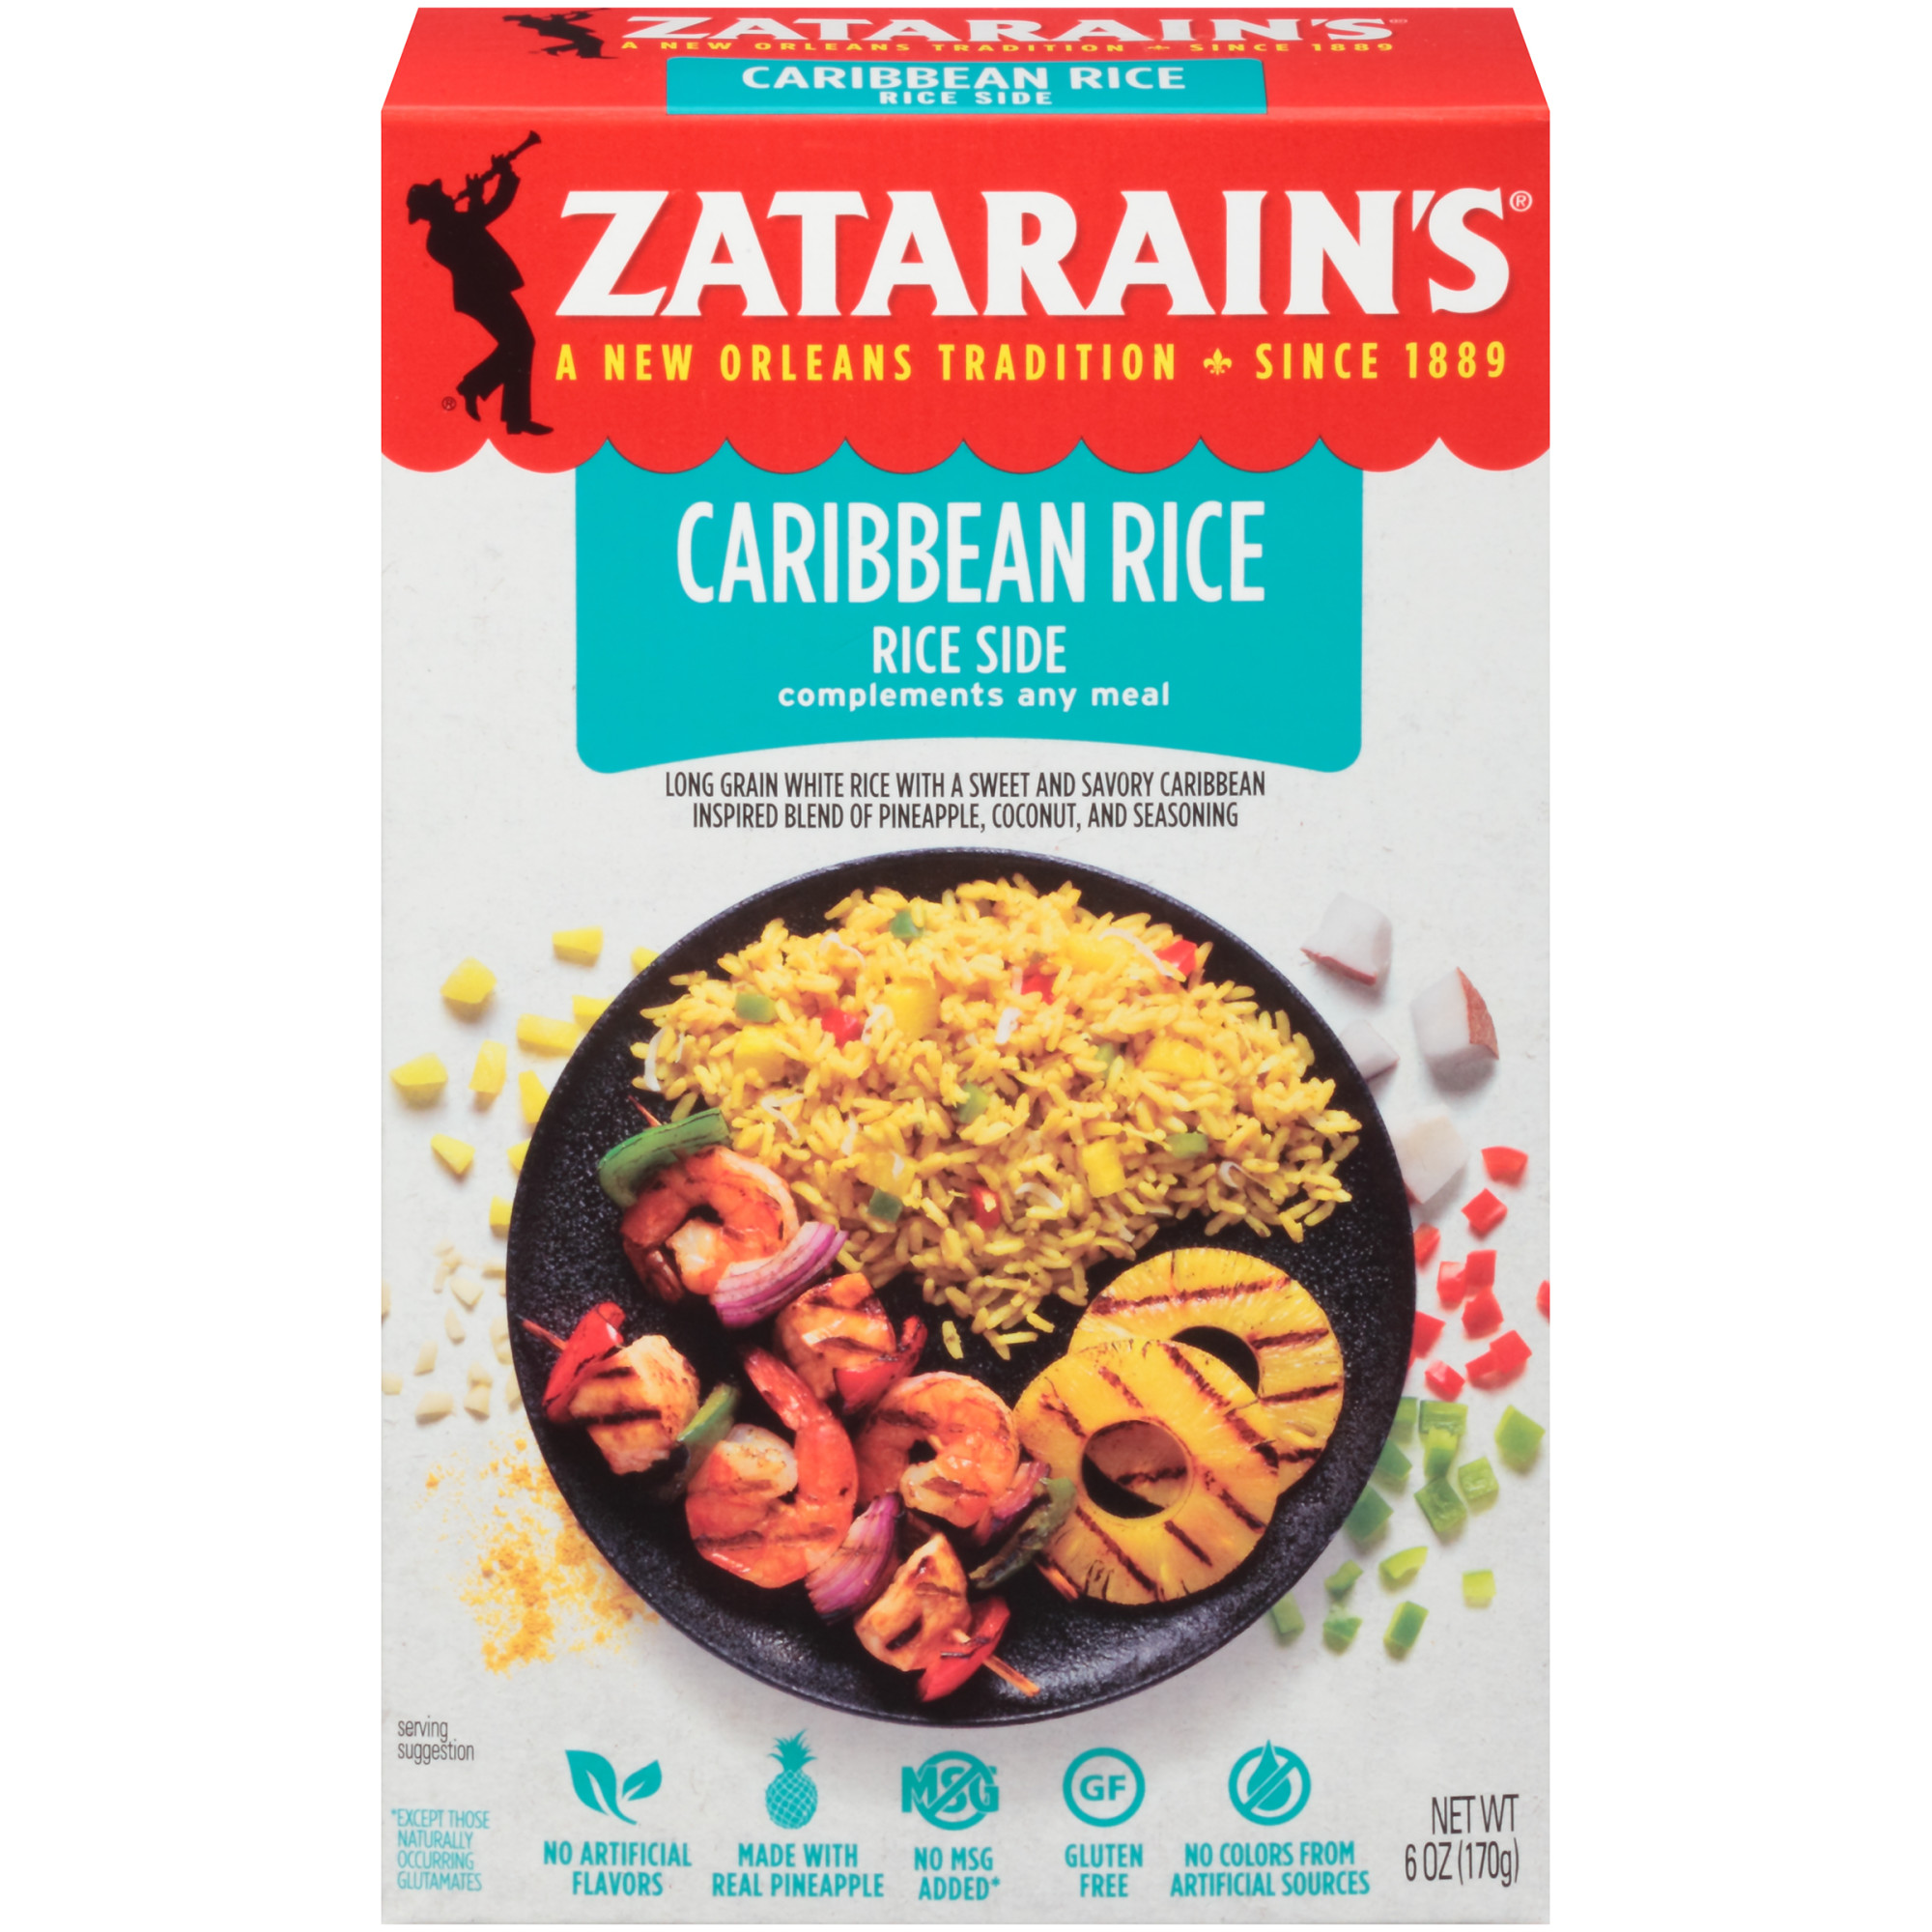 Zatarain's Caribbean Rice Mix, 6 oz